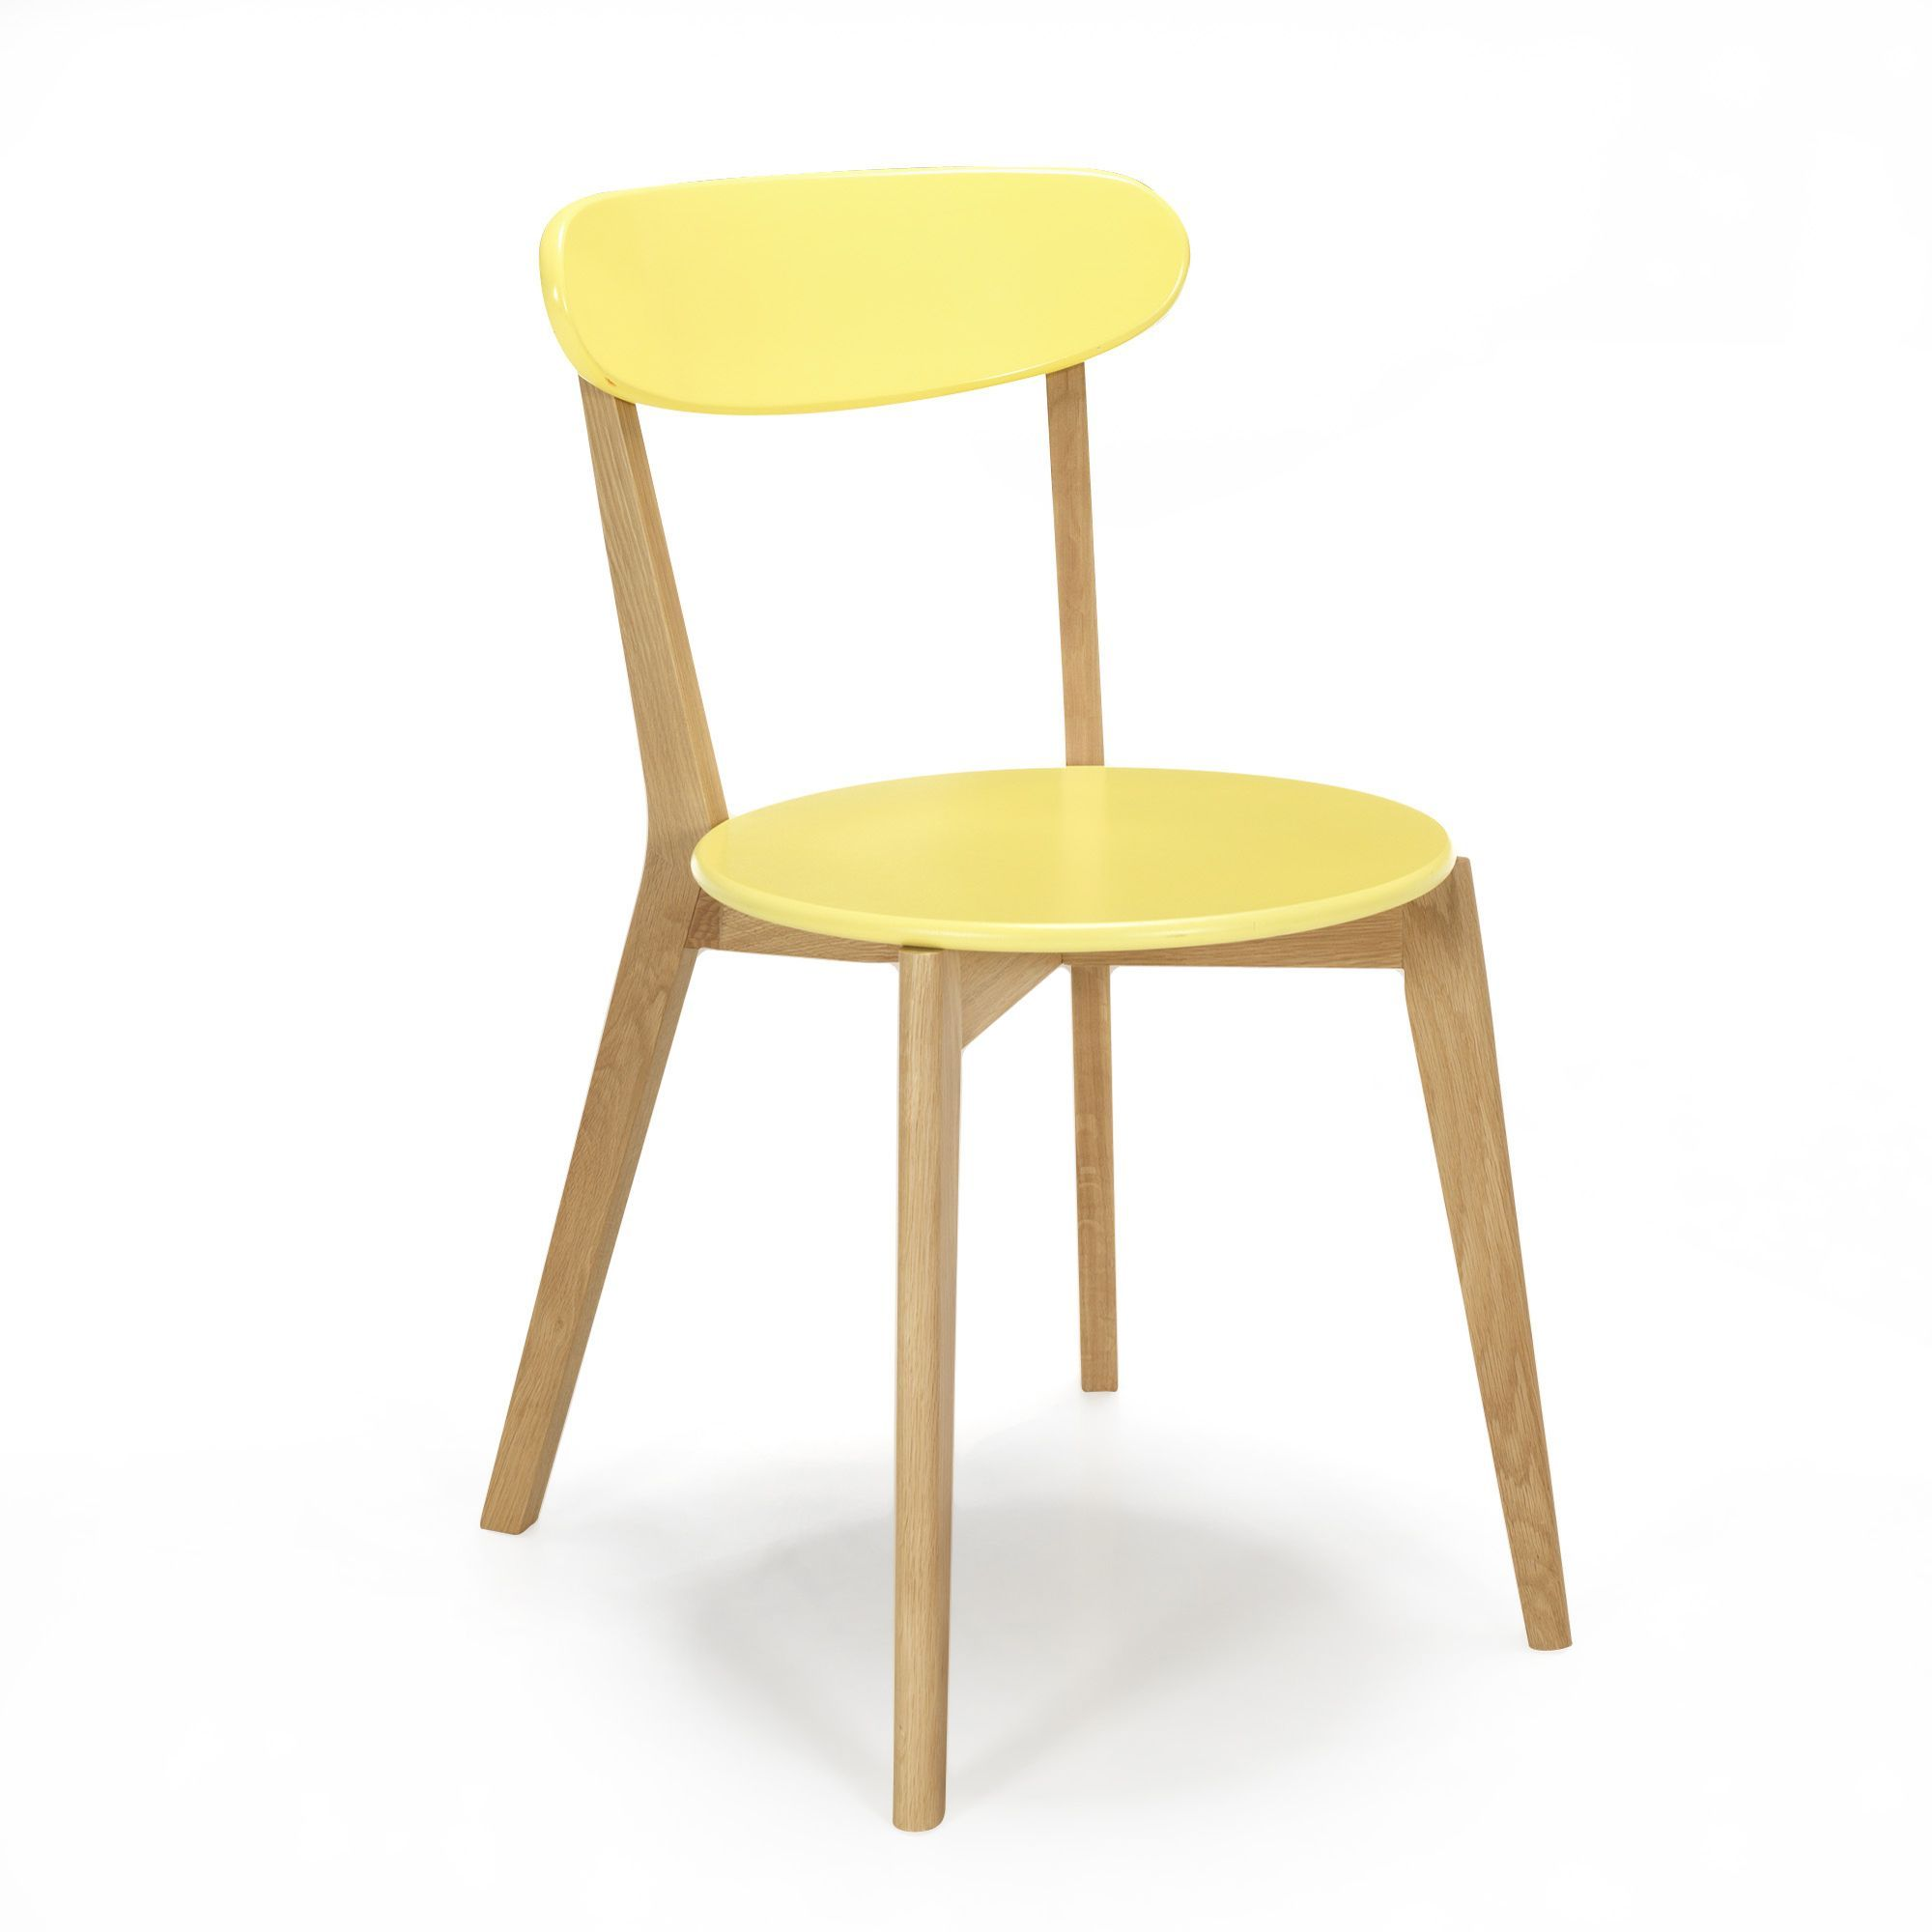 Chaise design scandinave coloris jaune Jaune - Siwa - Chaises ...